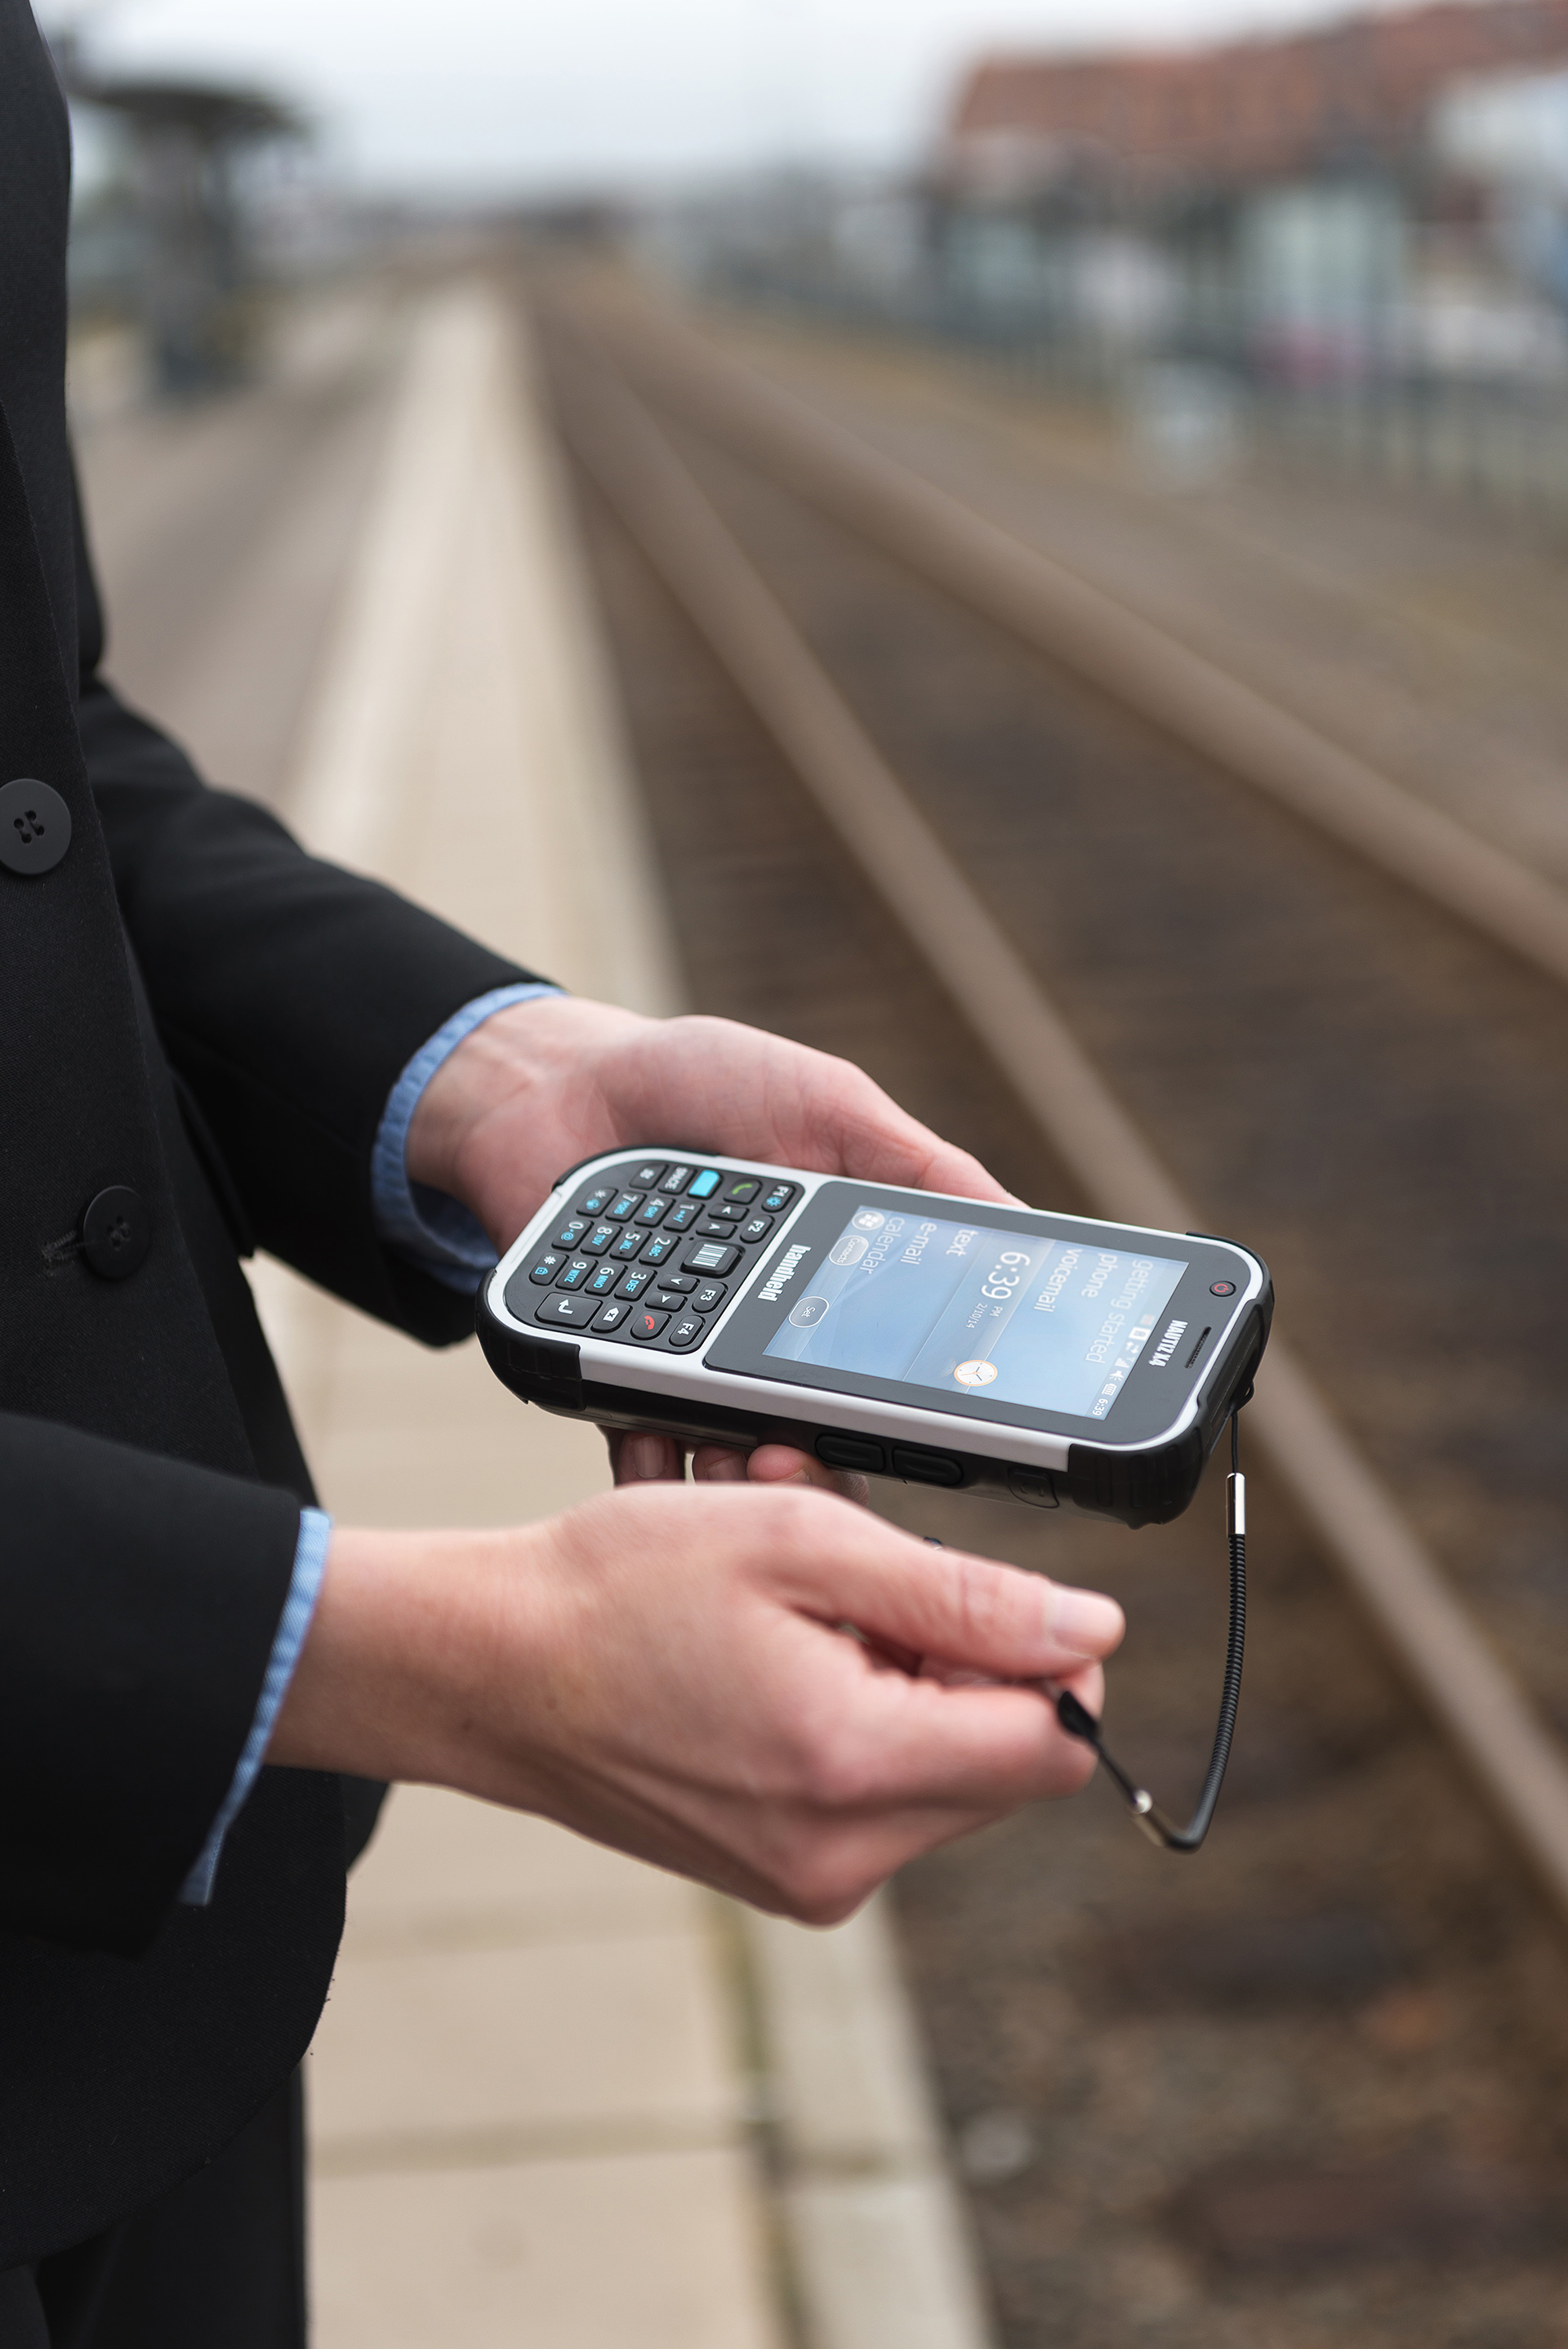 Nautiz-eTicket-Pro-II-rugged-IP65-trainstation-public-transport.jpg